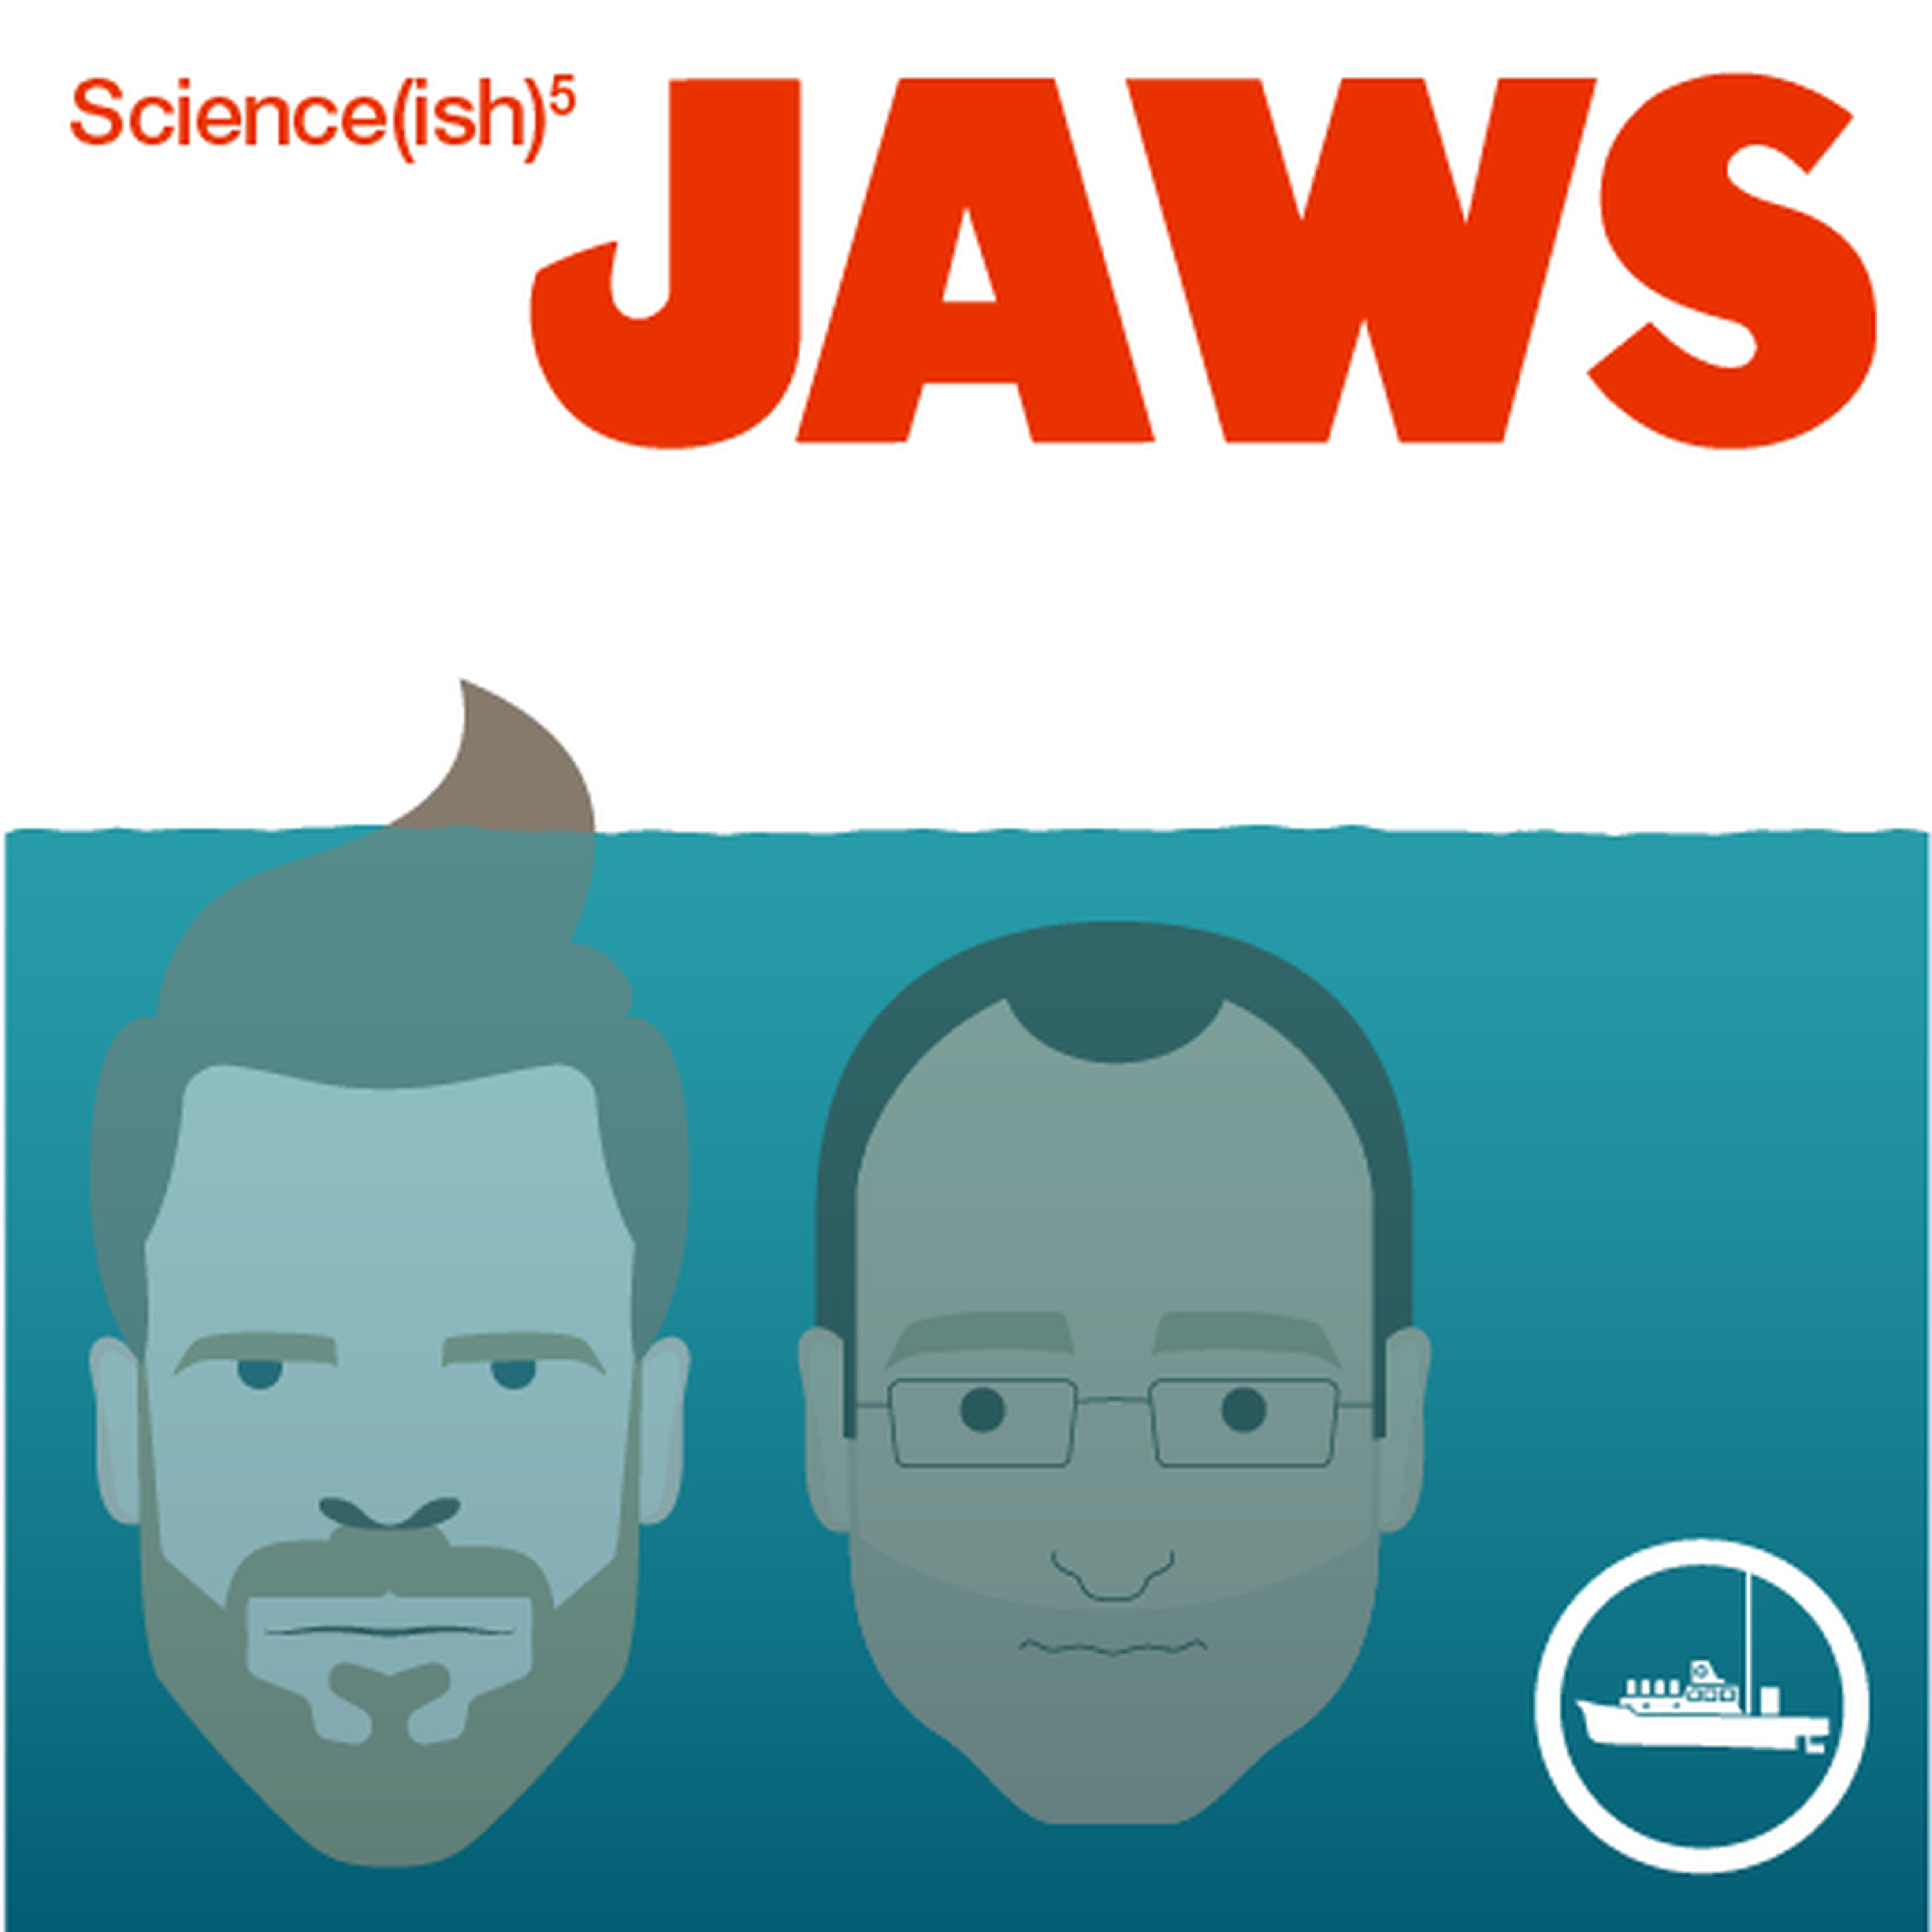 1: Jaws